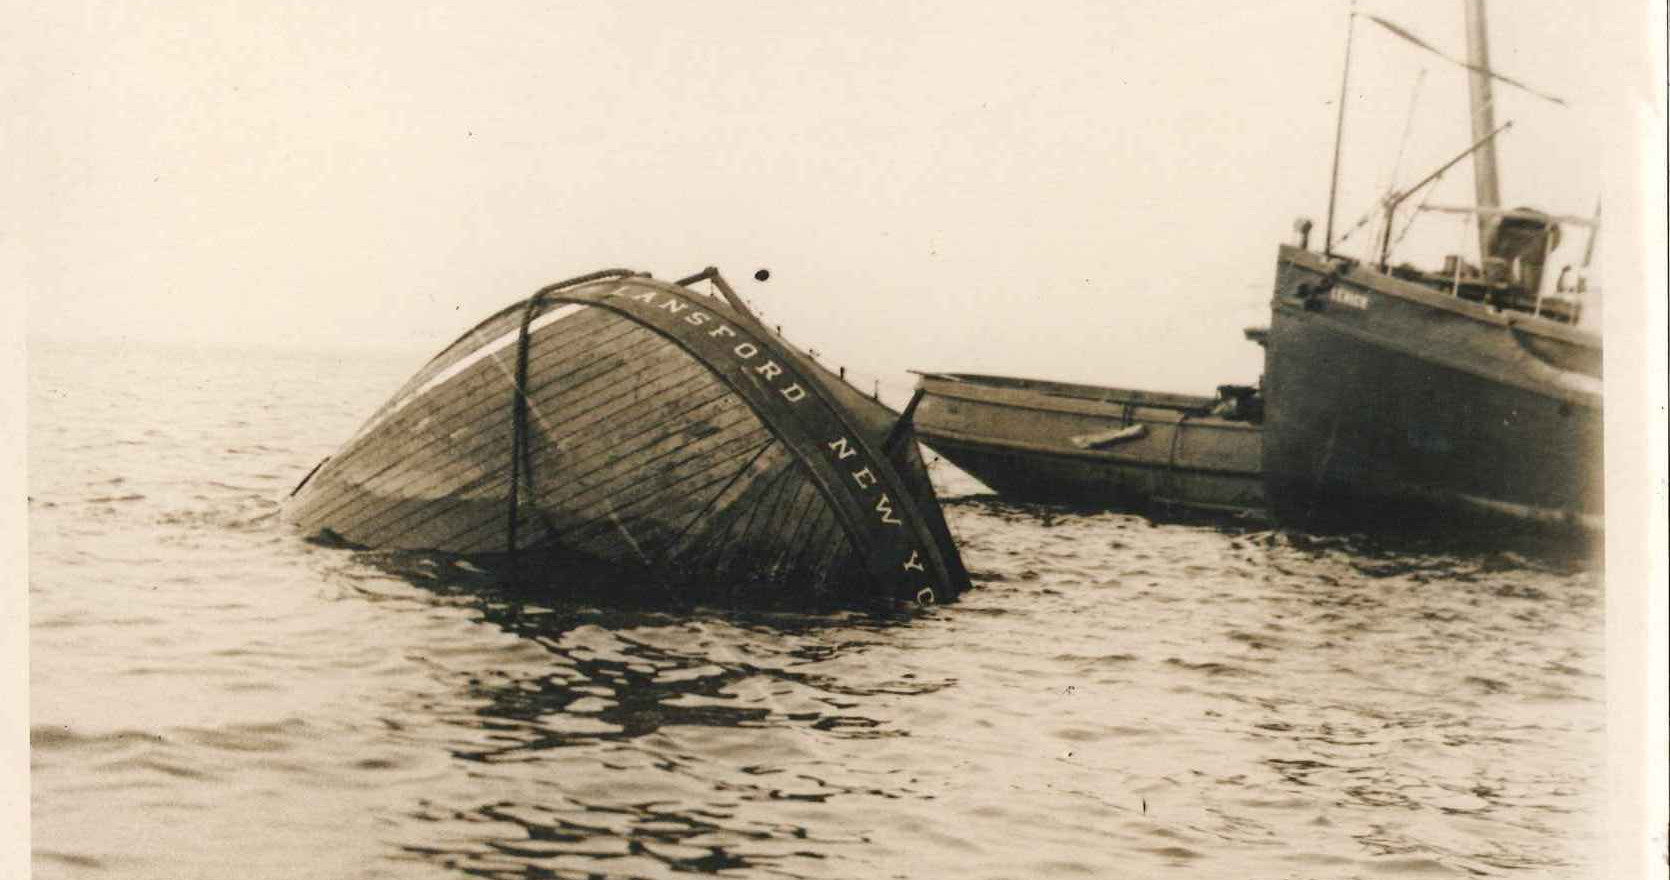 the Lansford sinking the next day